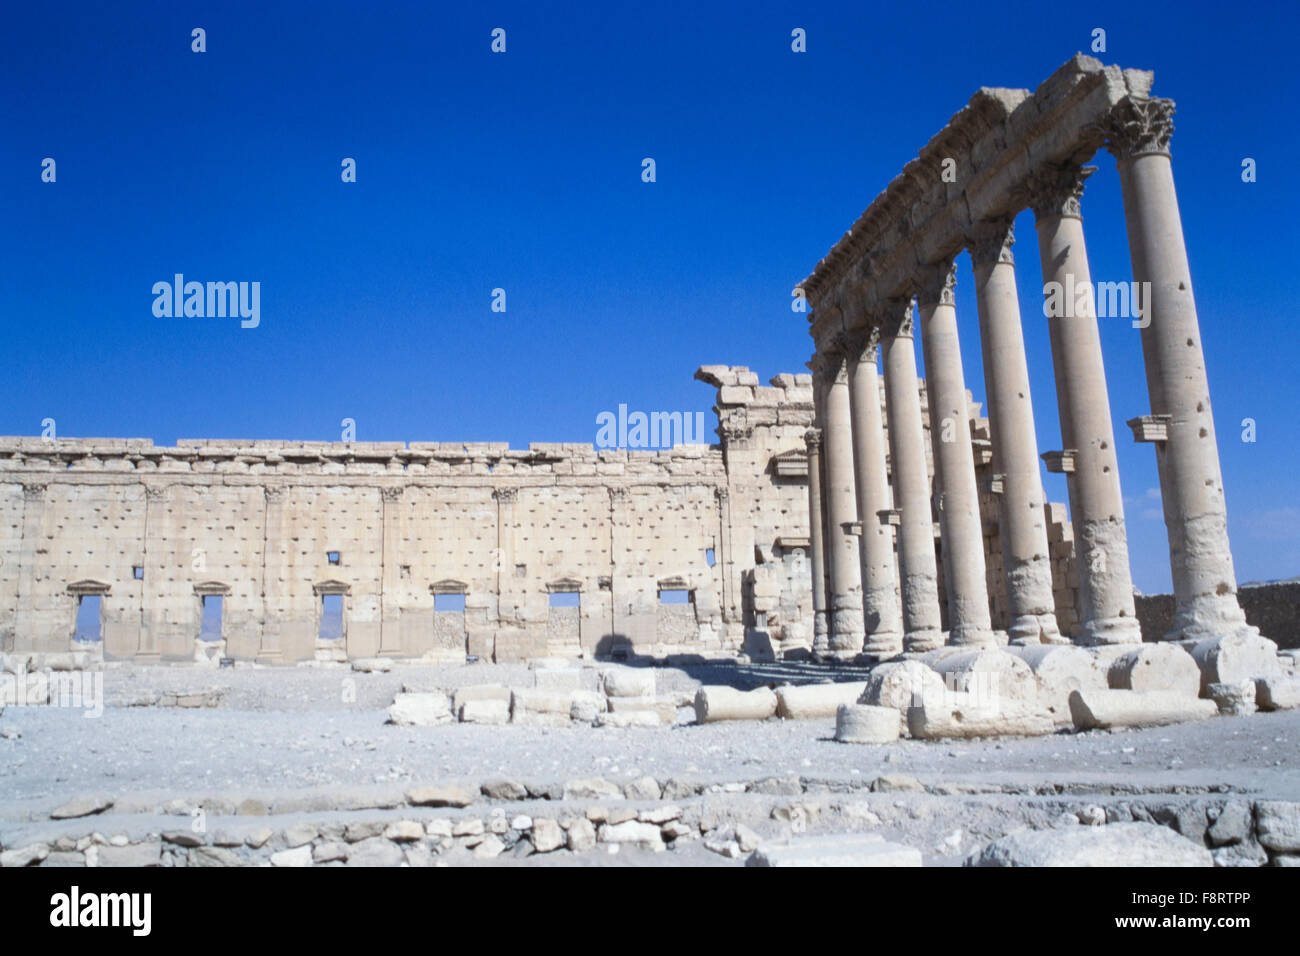 Part of the ruins at Palmyra in Syria. Palmyra is an ancient Semitic city in present-day Homs Governorate, Syria. Stock Photo